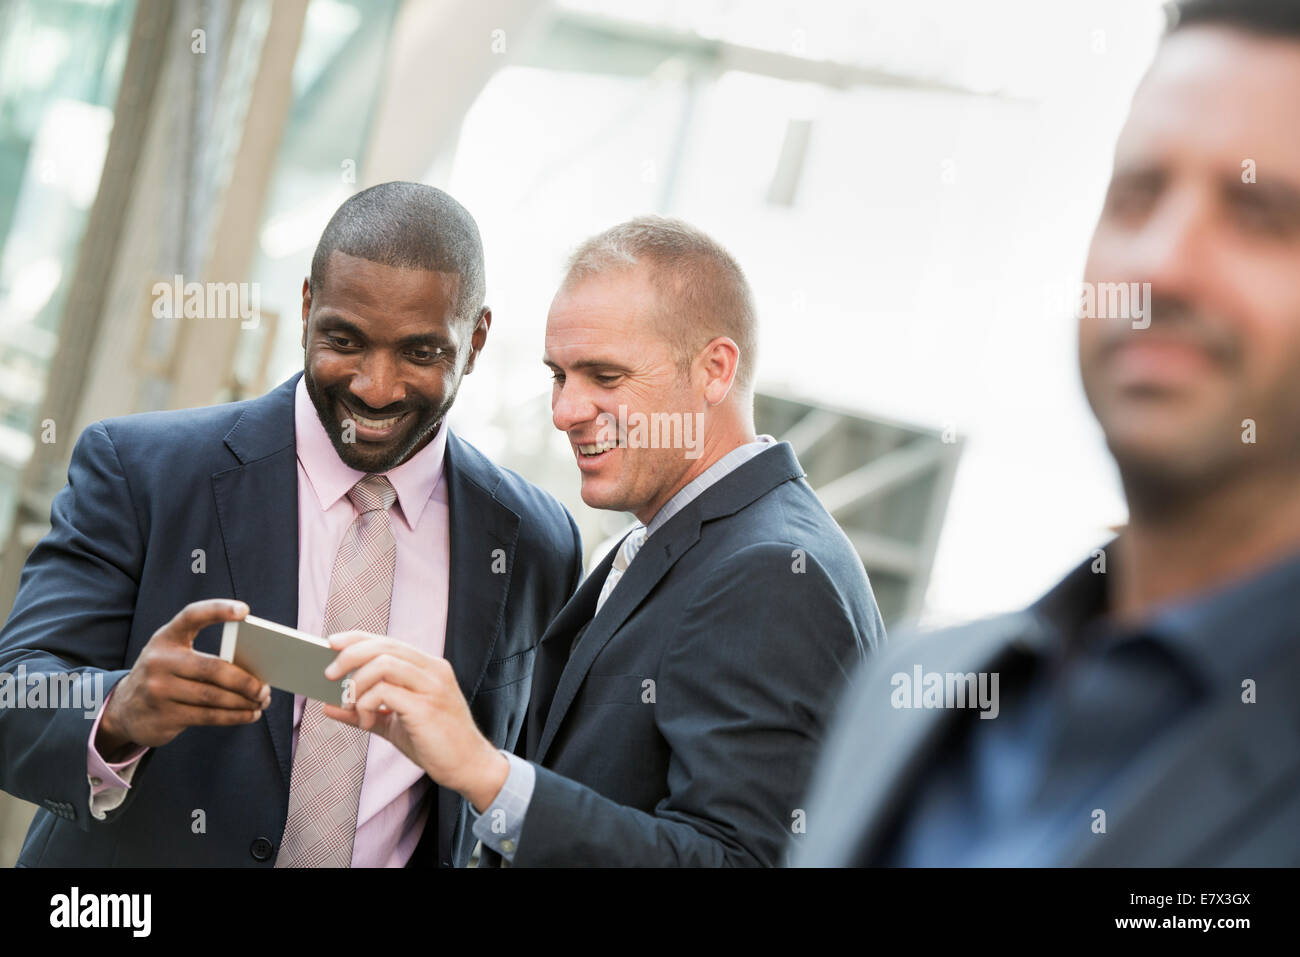 Two businessmen checking a phone and laughing, one man in the fore. - Stock Image